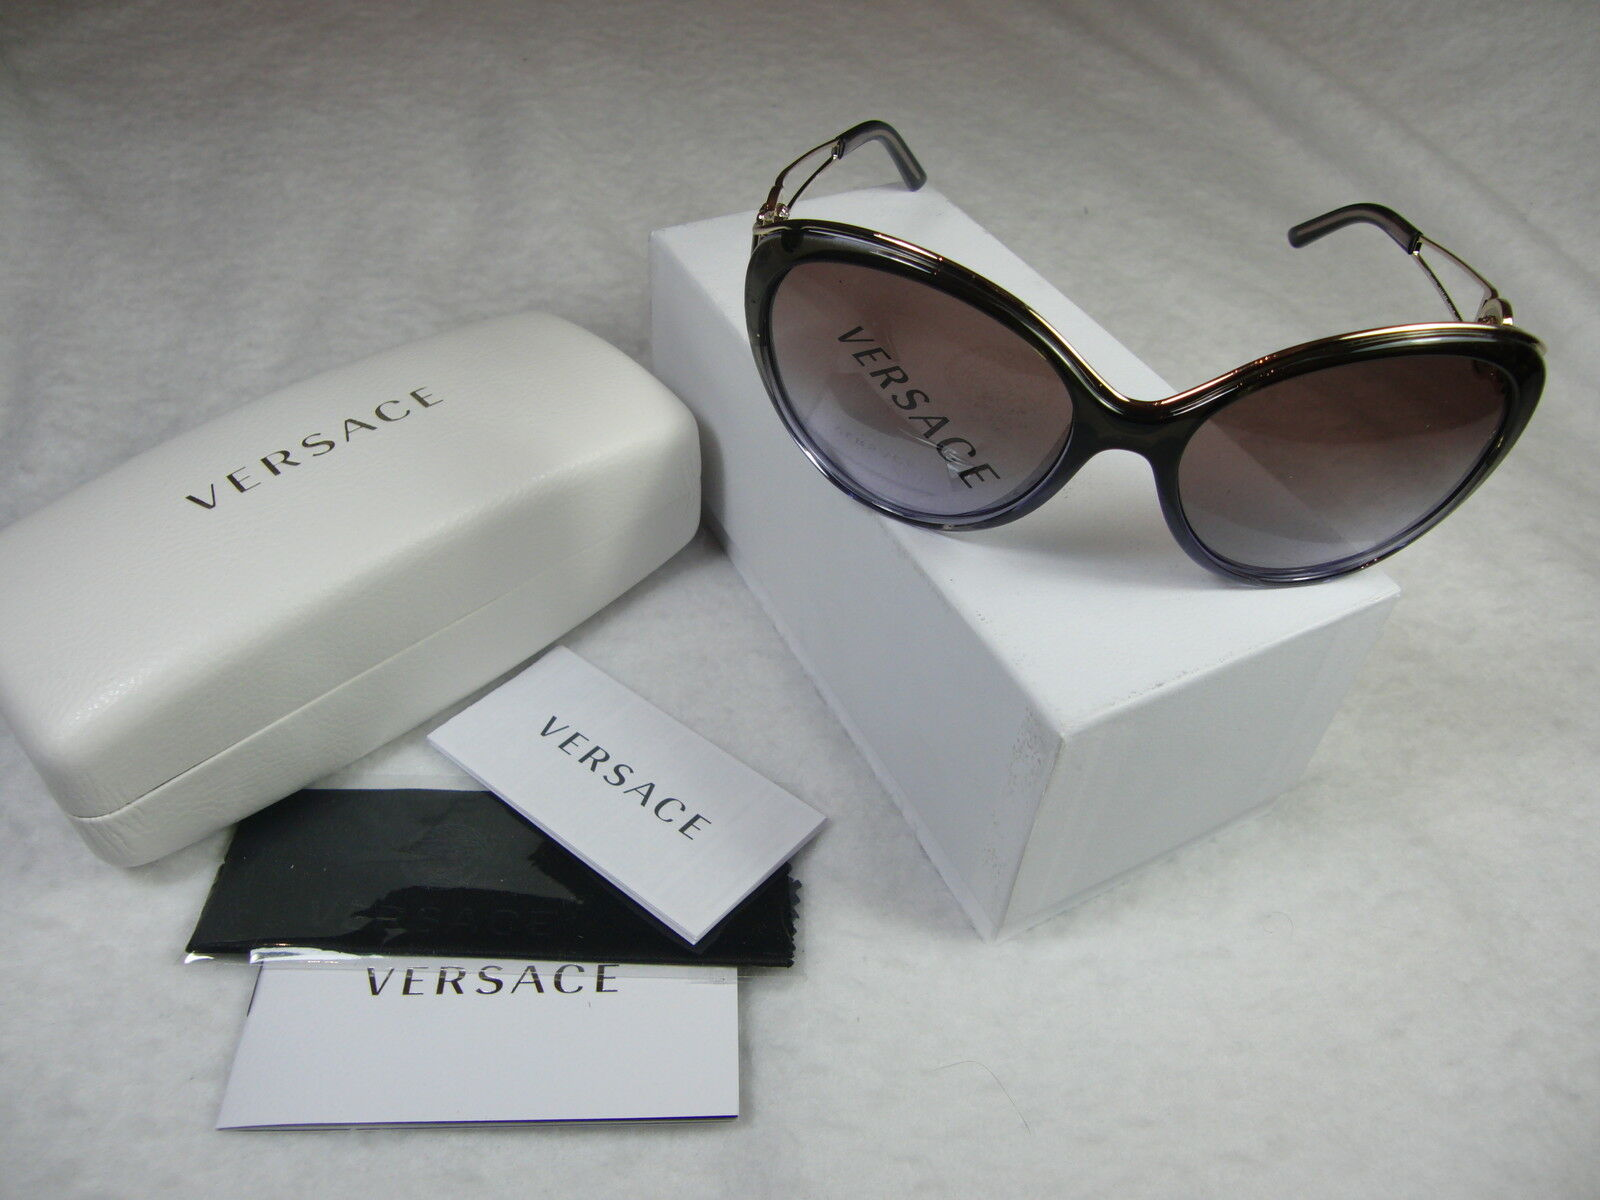 ac5677d848a ... EAN 8053672441901 product image for Versace Polarized Sunglasses With  Case cloth (ve2163) ...